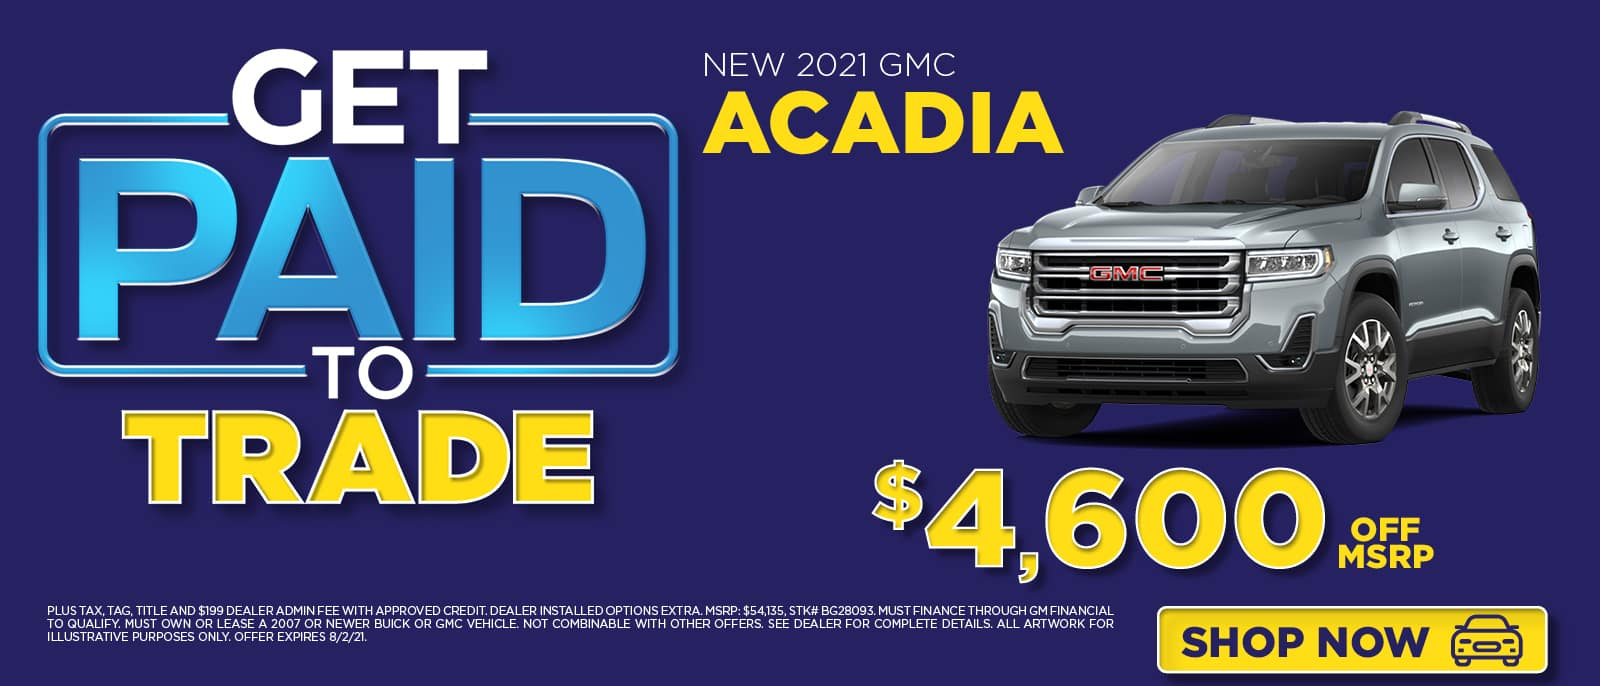 Get Paid to Trade - Acadia